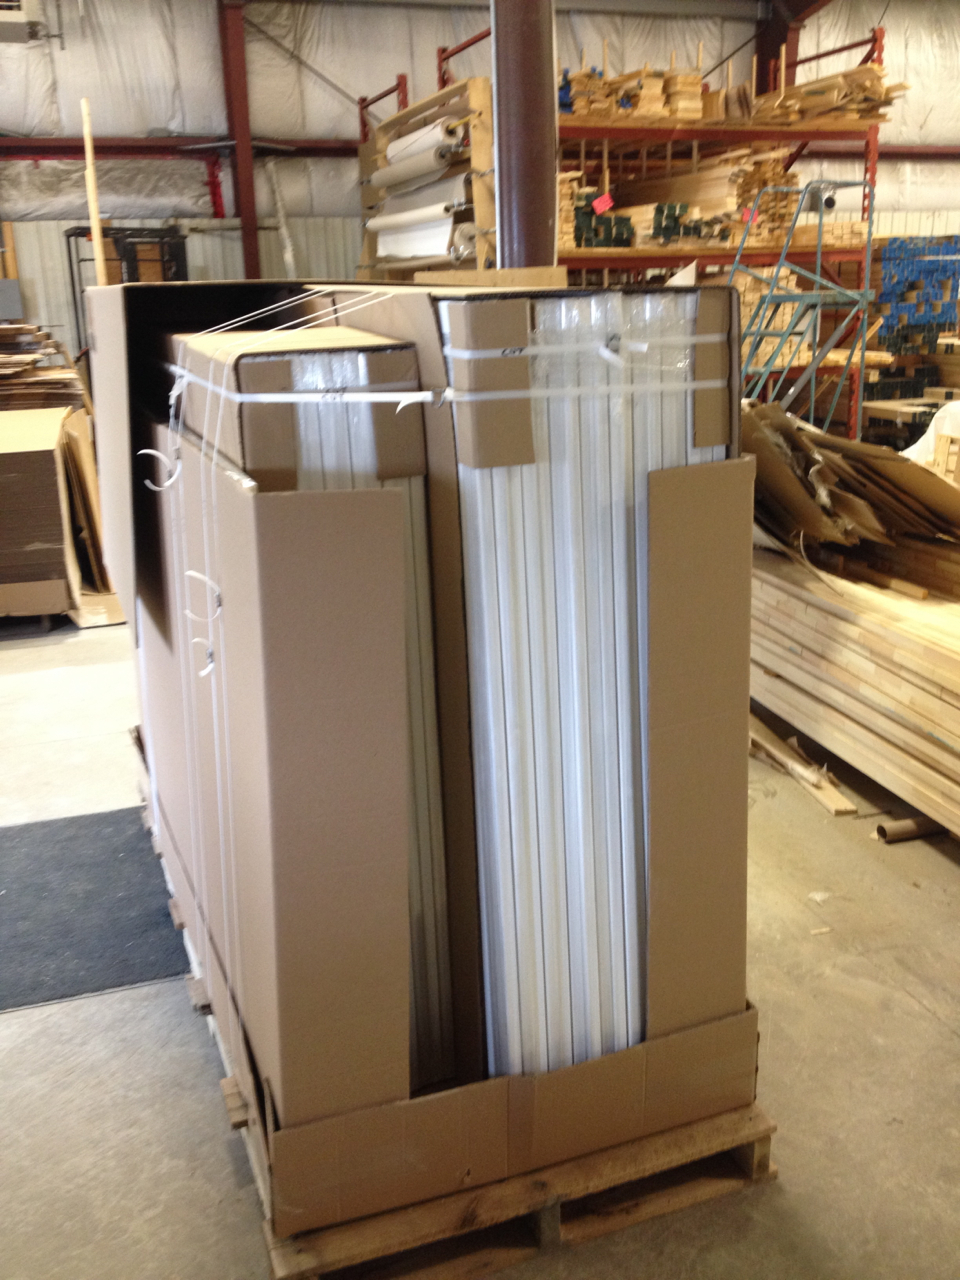 36 blank canvases being packaged for shipping to Brooklyn, NY